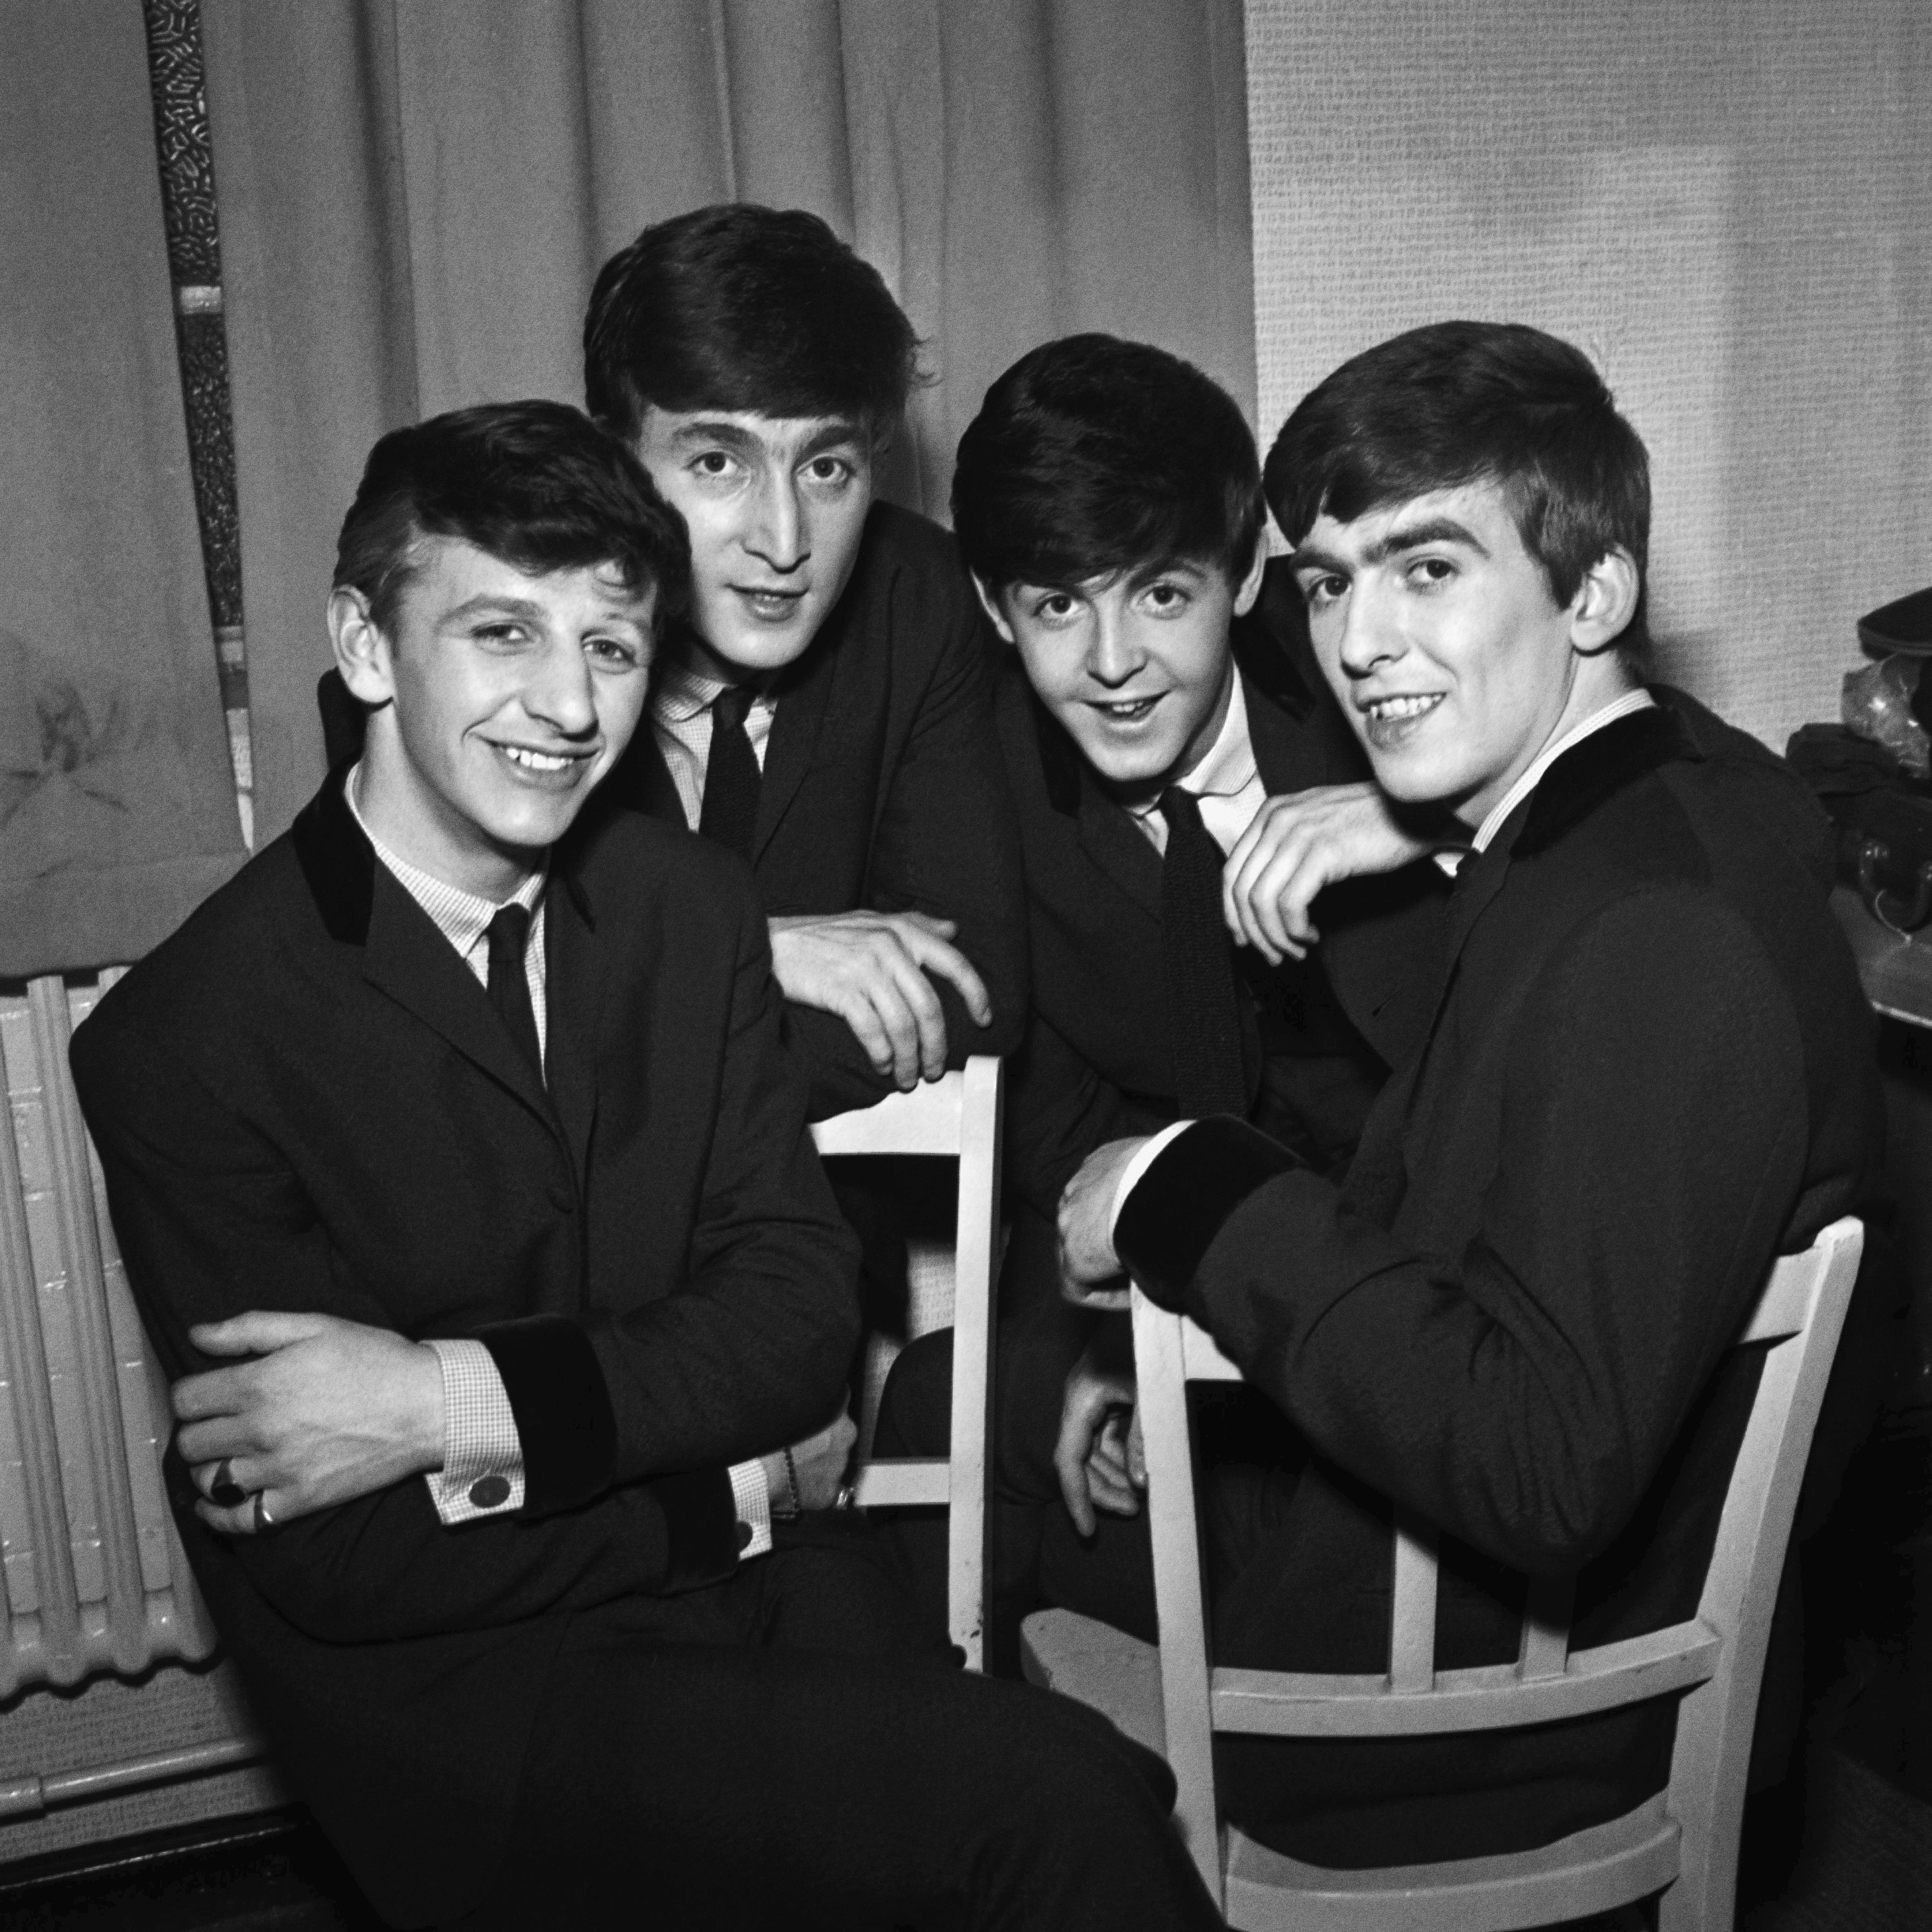 Beatles' 1962 Recording From Hamburg Strip Club Going to Auction